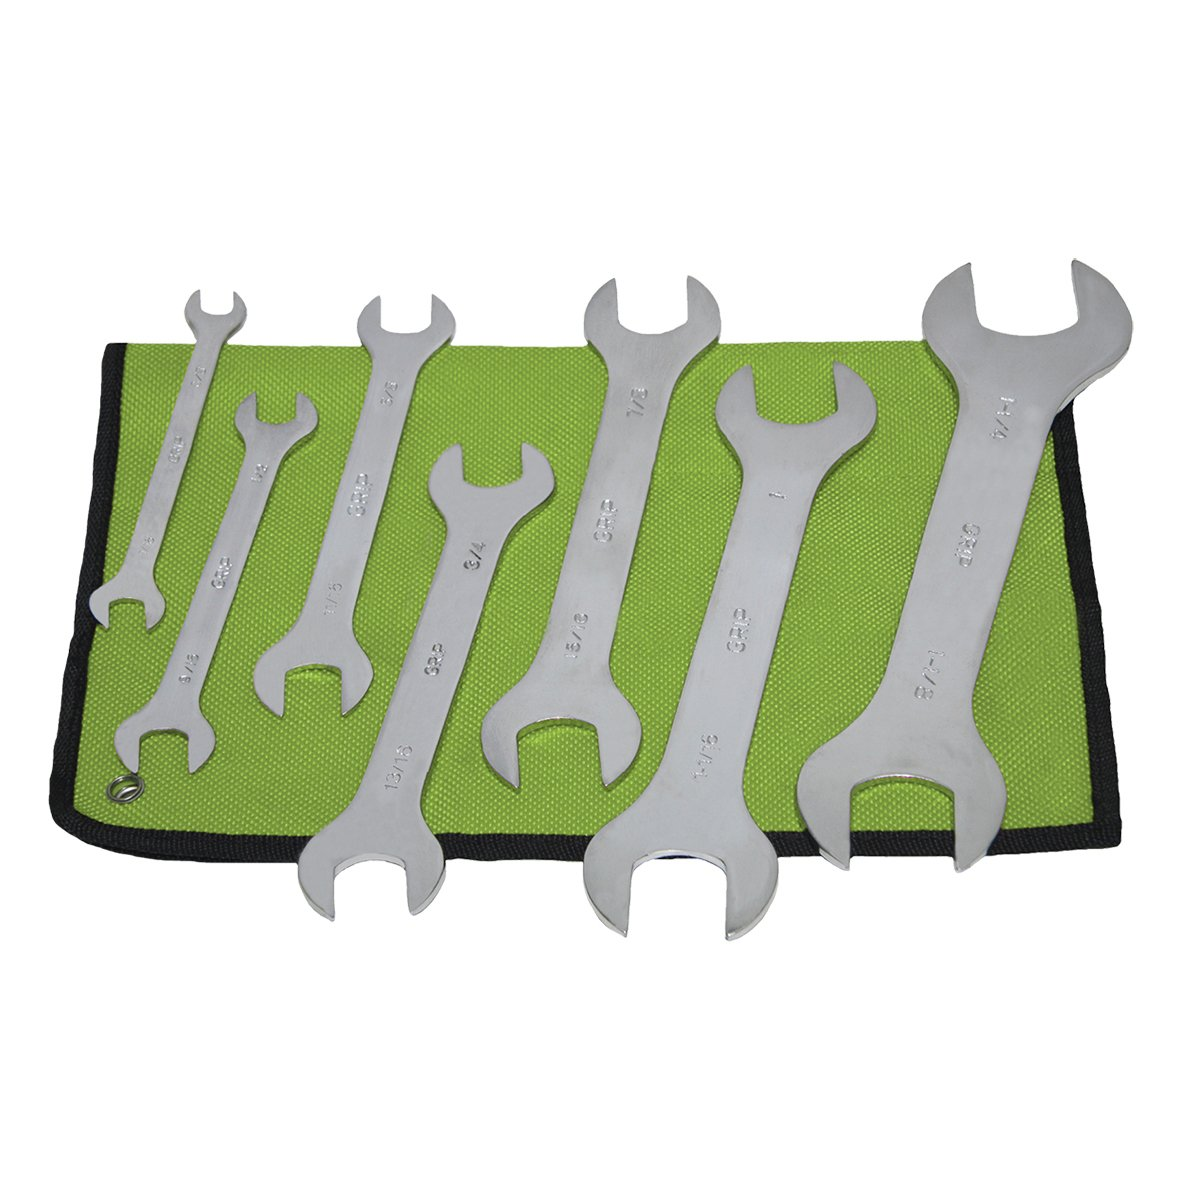 Grip 7 pc Super Thin Wrench Set by Grip